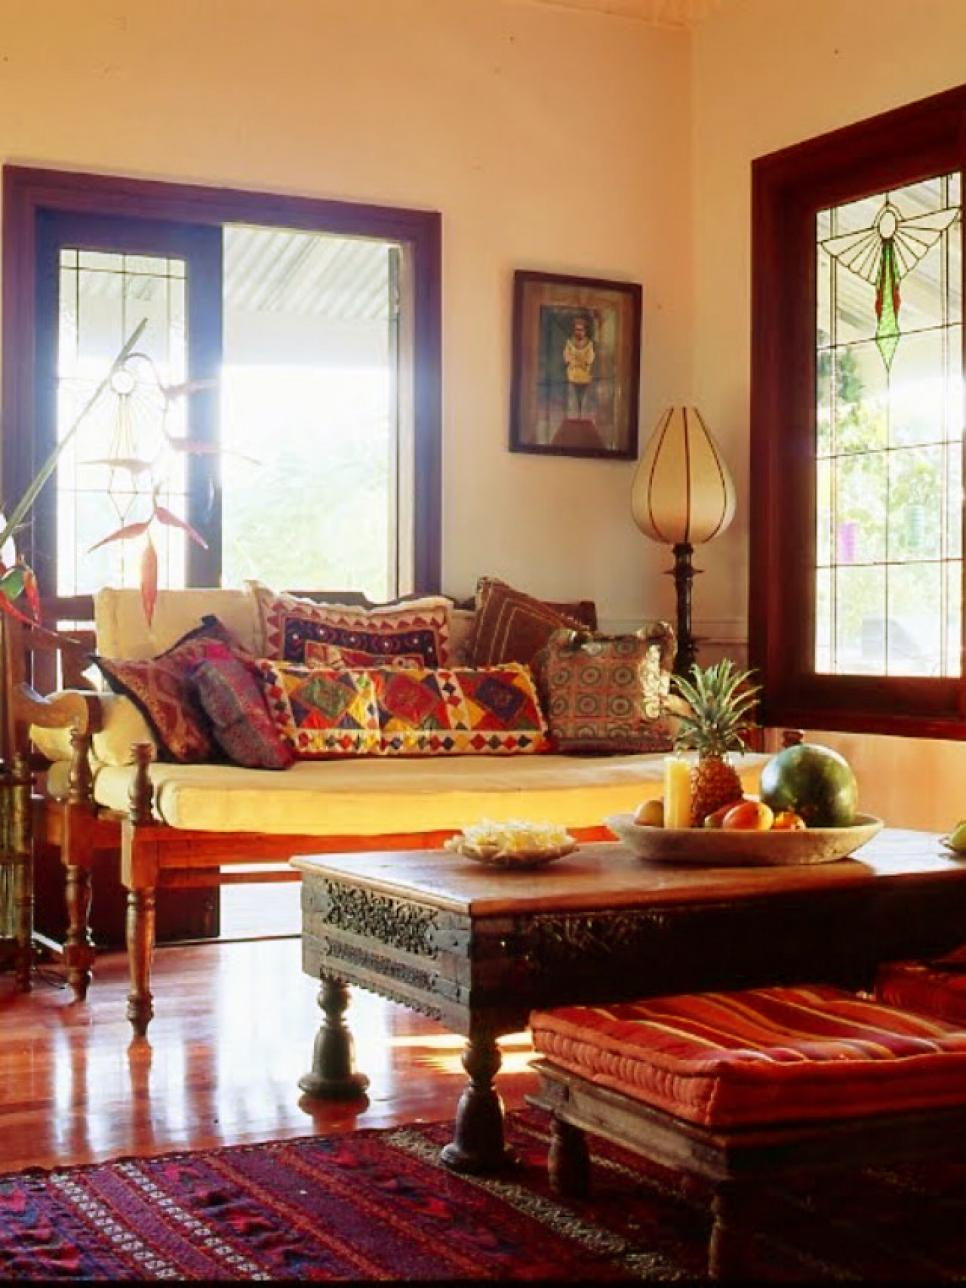 Furniture-indian-interior-design Top 10 Indian Interior Design Trends for 2020